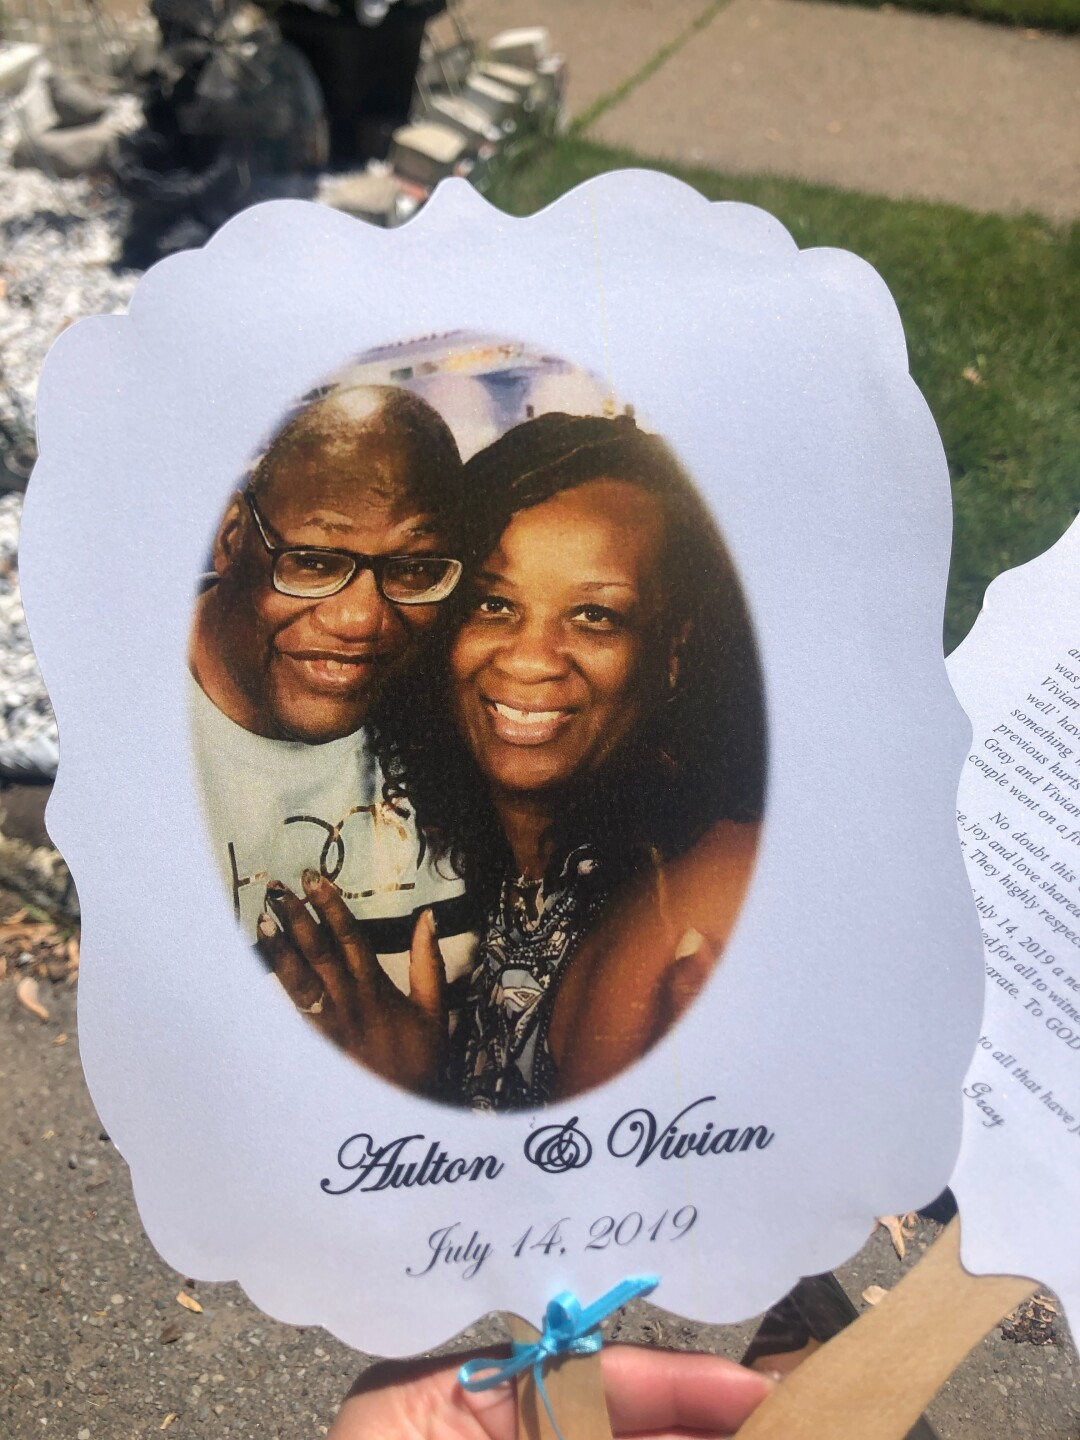 Vivian and Aulton Gray, who got married on July 14, 2019 and threw a wedding reception at their east side home in Detroit. They put mirrors on the blighted home next to them to disguise the deterioration.